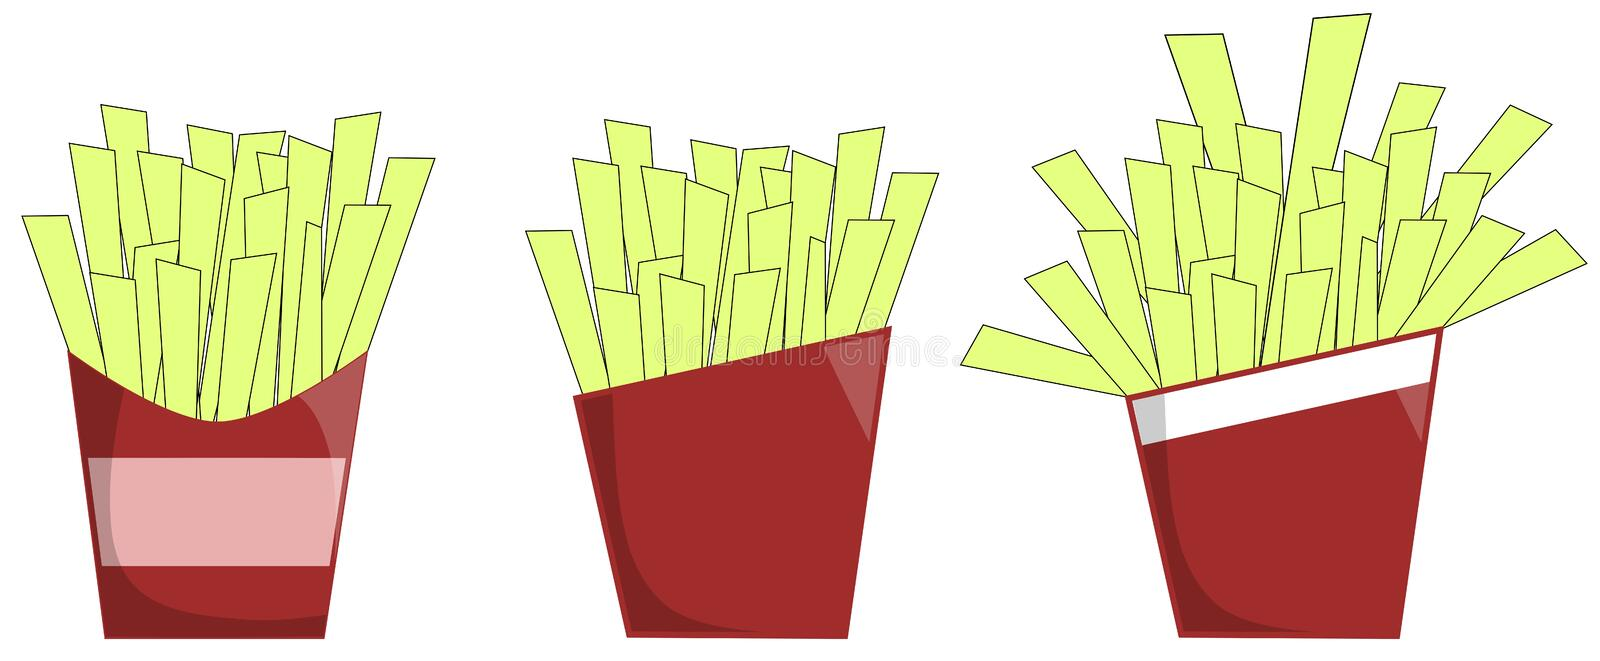 French fries stock illustration